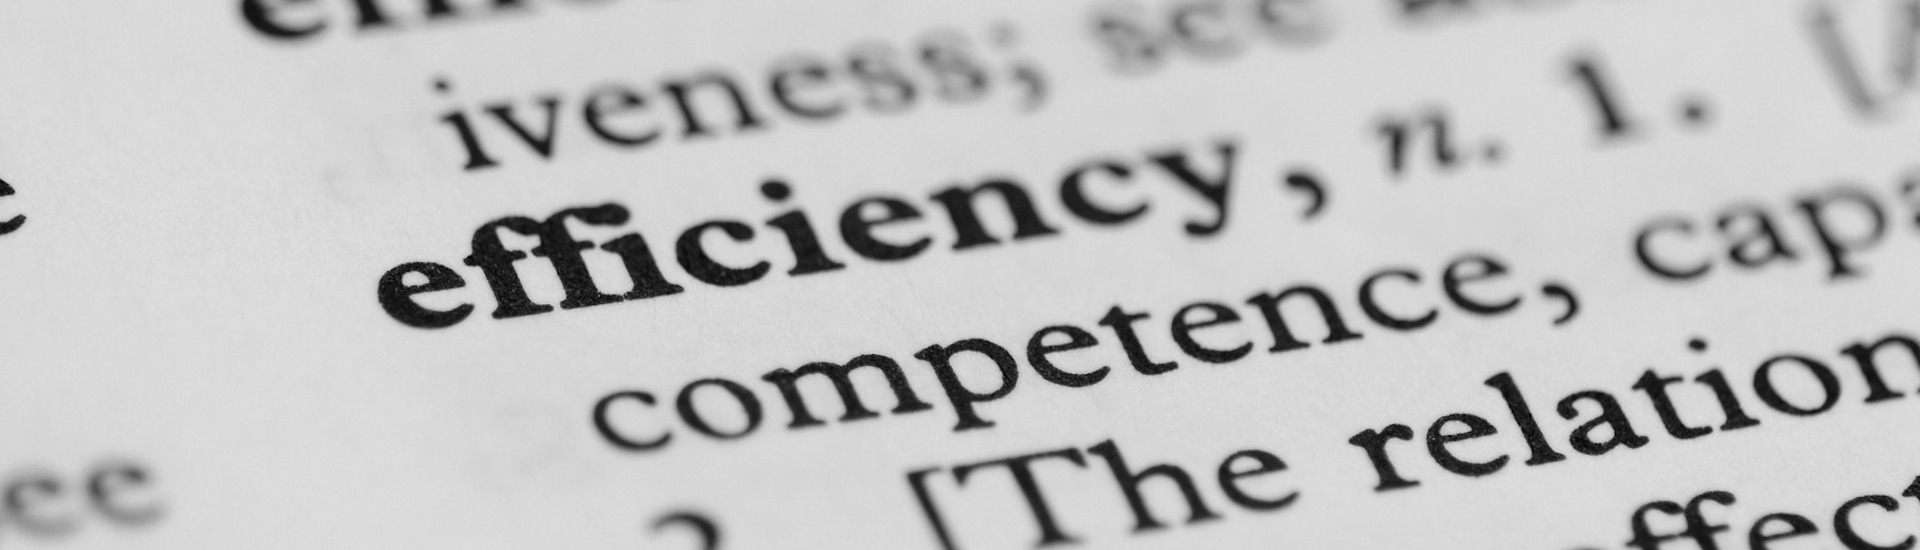 photodune-711019-dictionary-series-efficiency-m